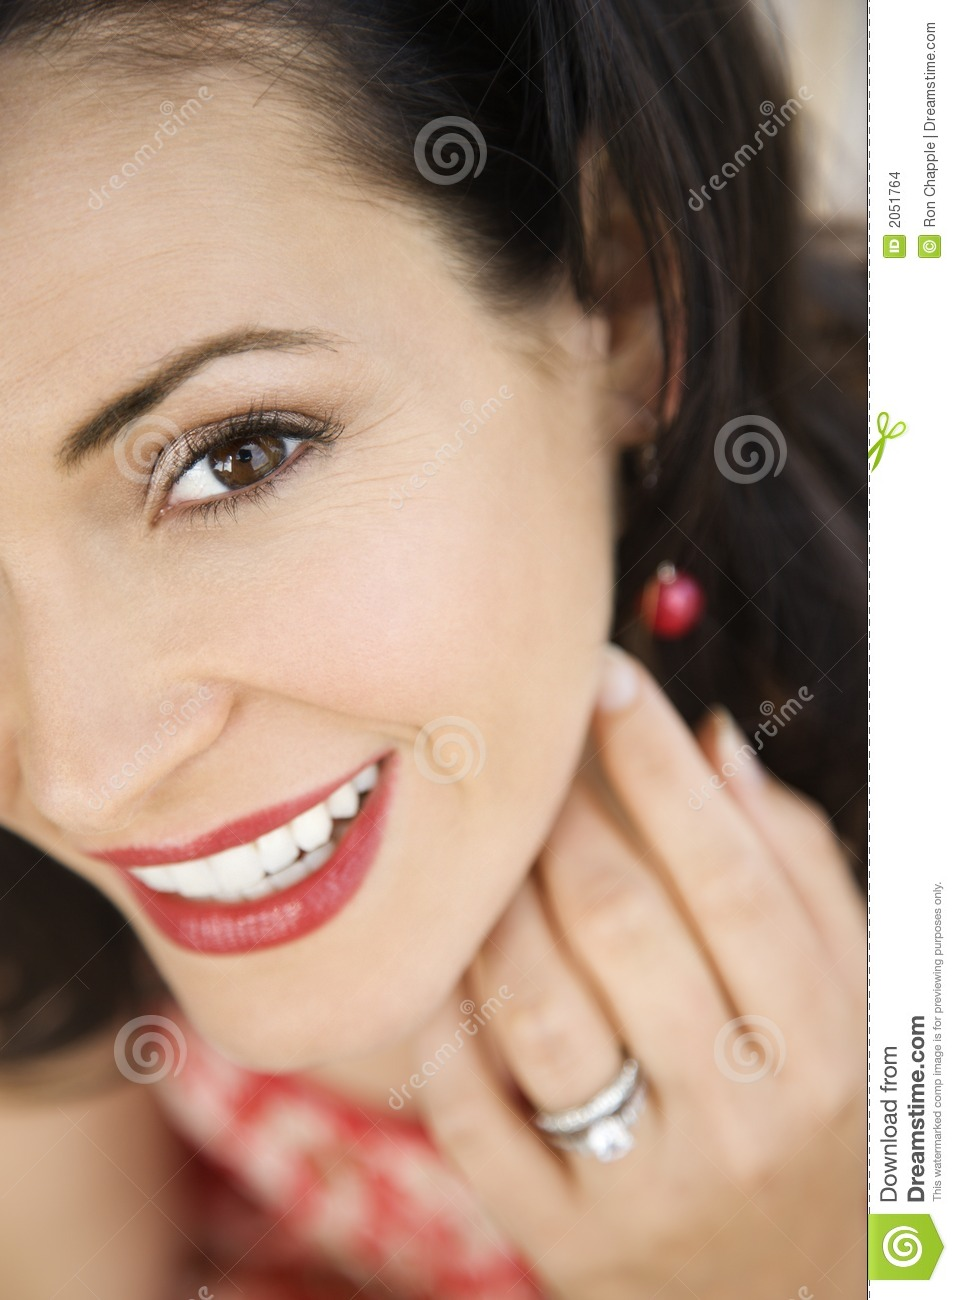 Woman Wearing Wedding Ring Stock Photo  Image of beauty face 2051764